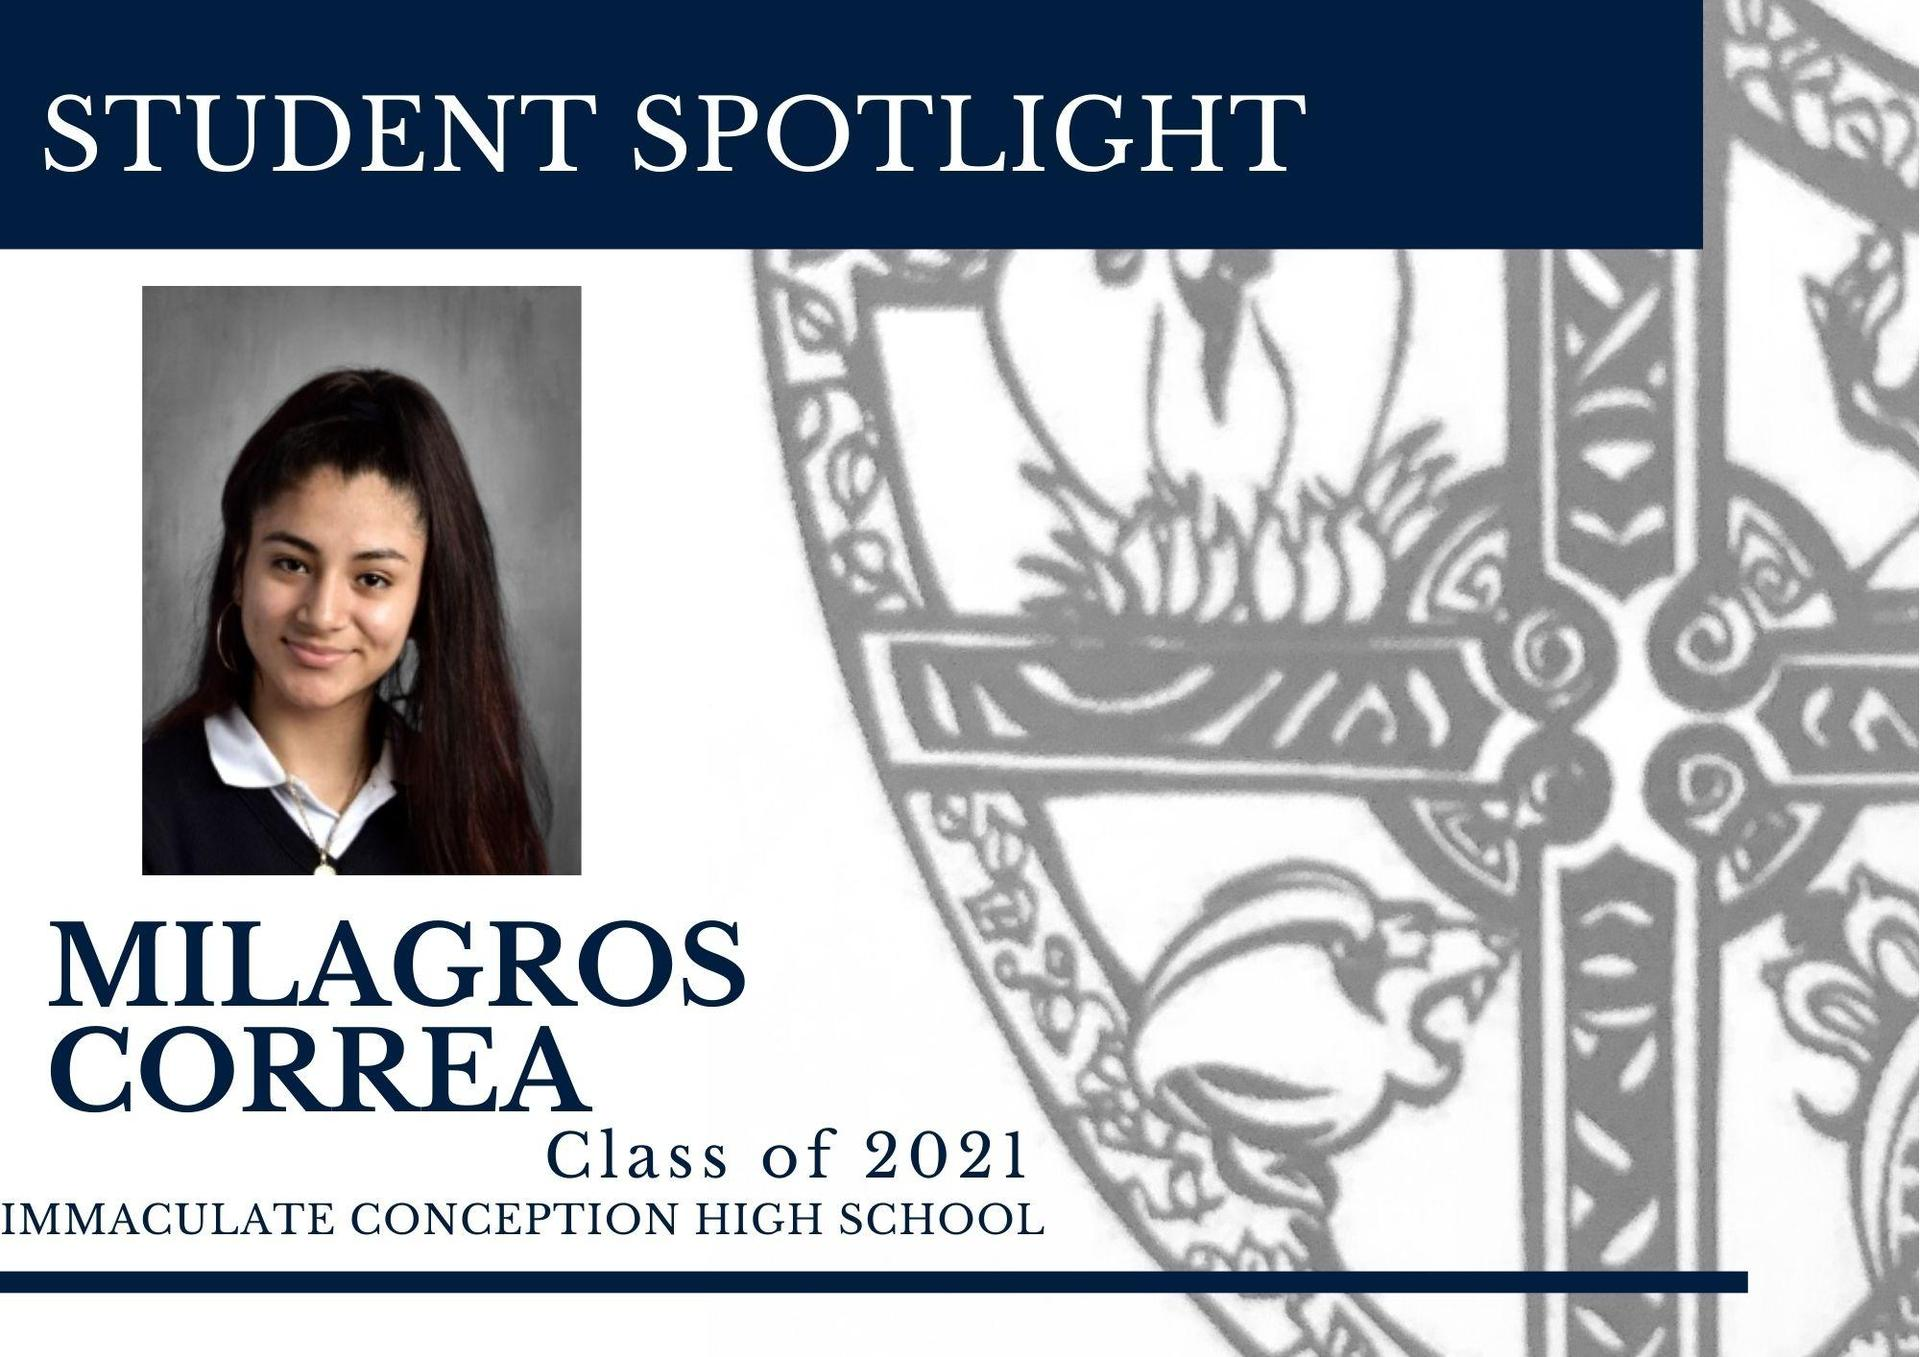 Milagros Correa Class of 2021